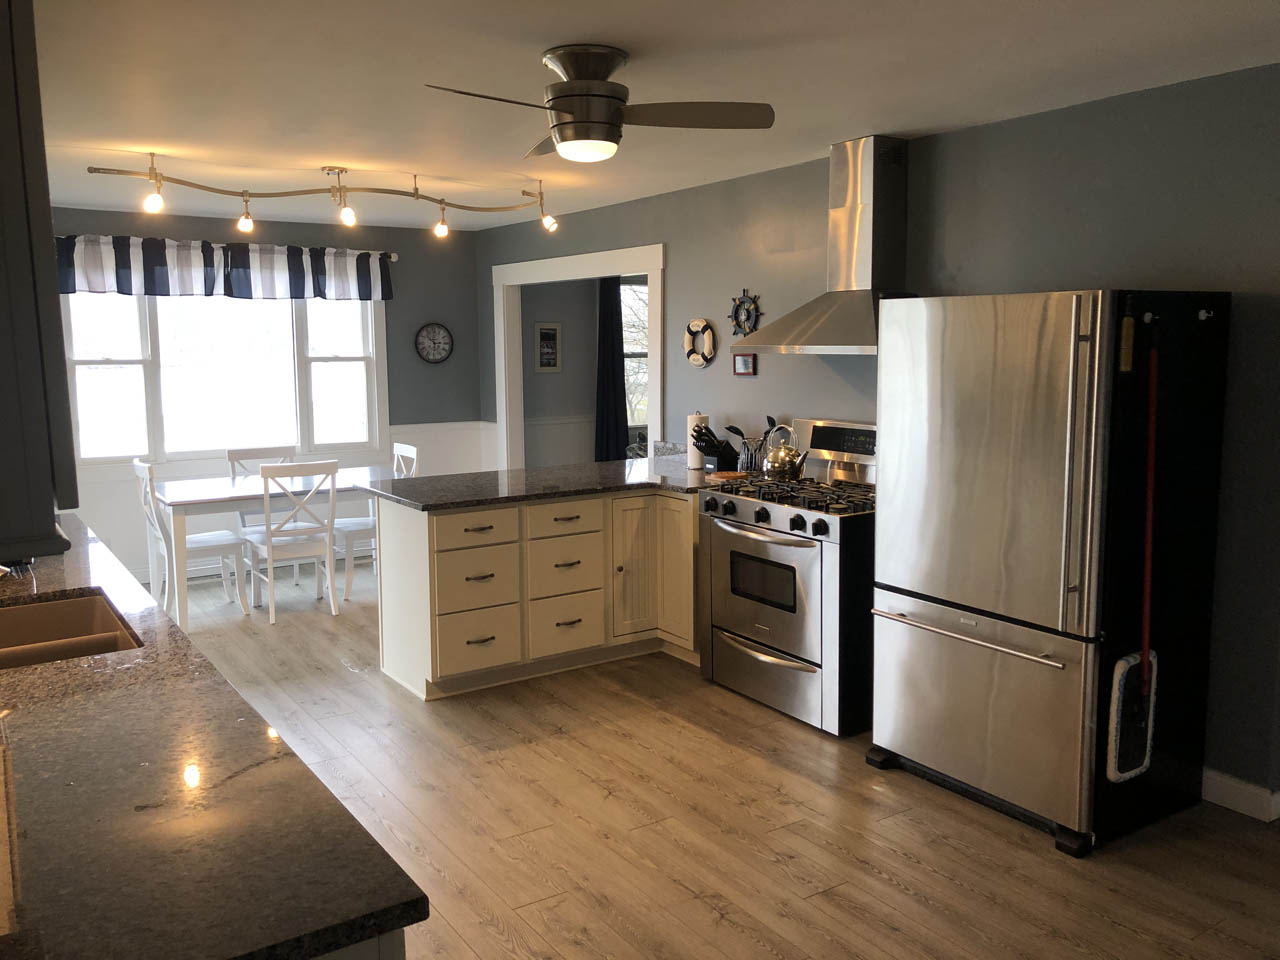 - Large, well-appointed kitchen with high end appliances and amazing views of the lake.